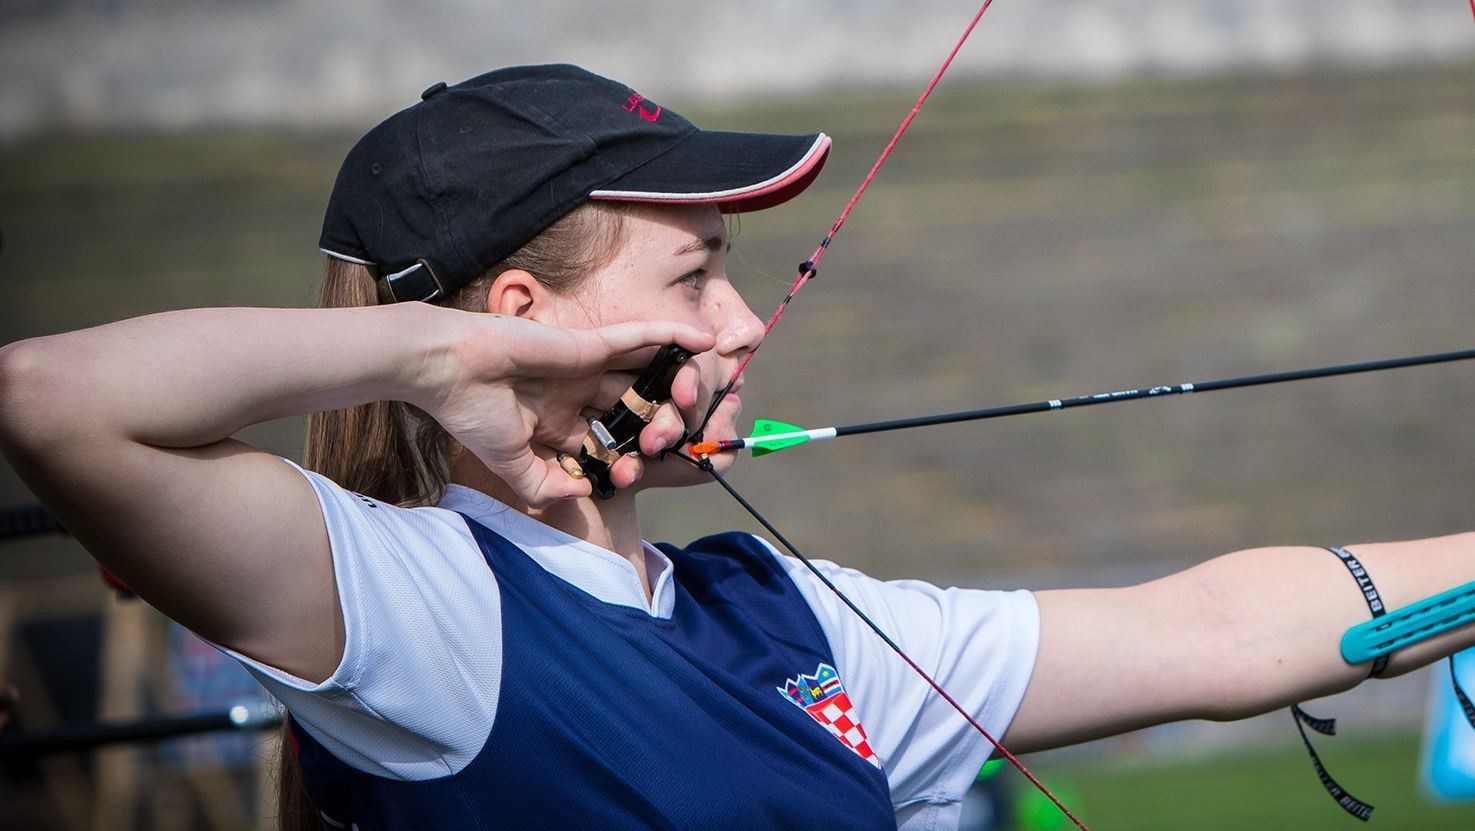 Mlinaric continues impressive Archery World Cup debut in Berlin